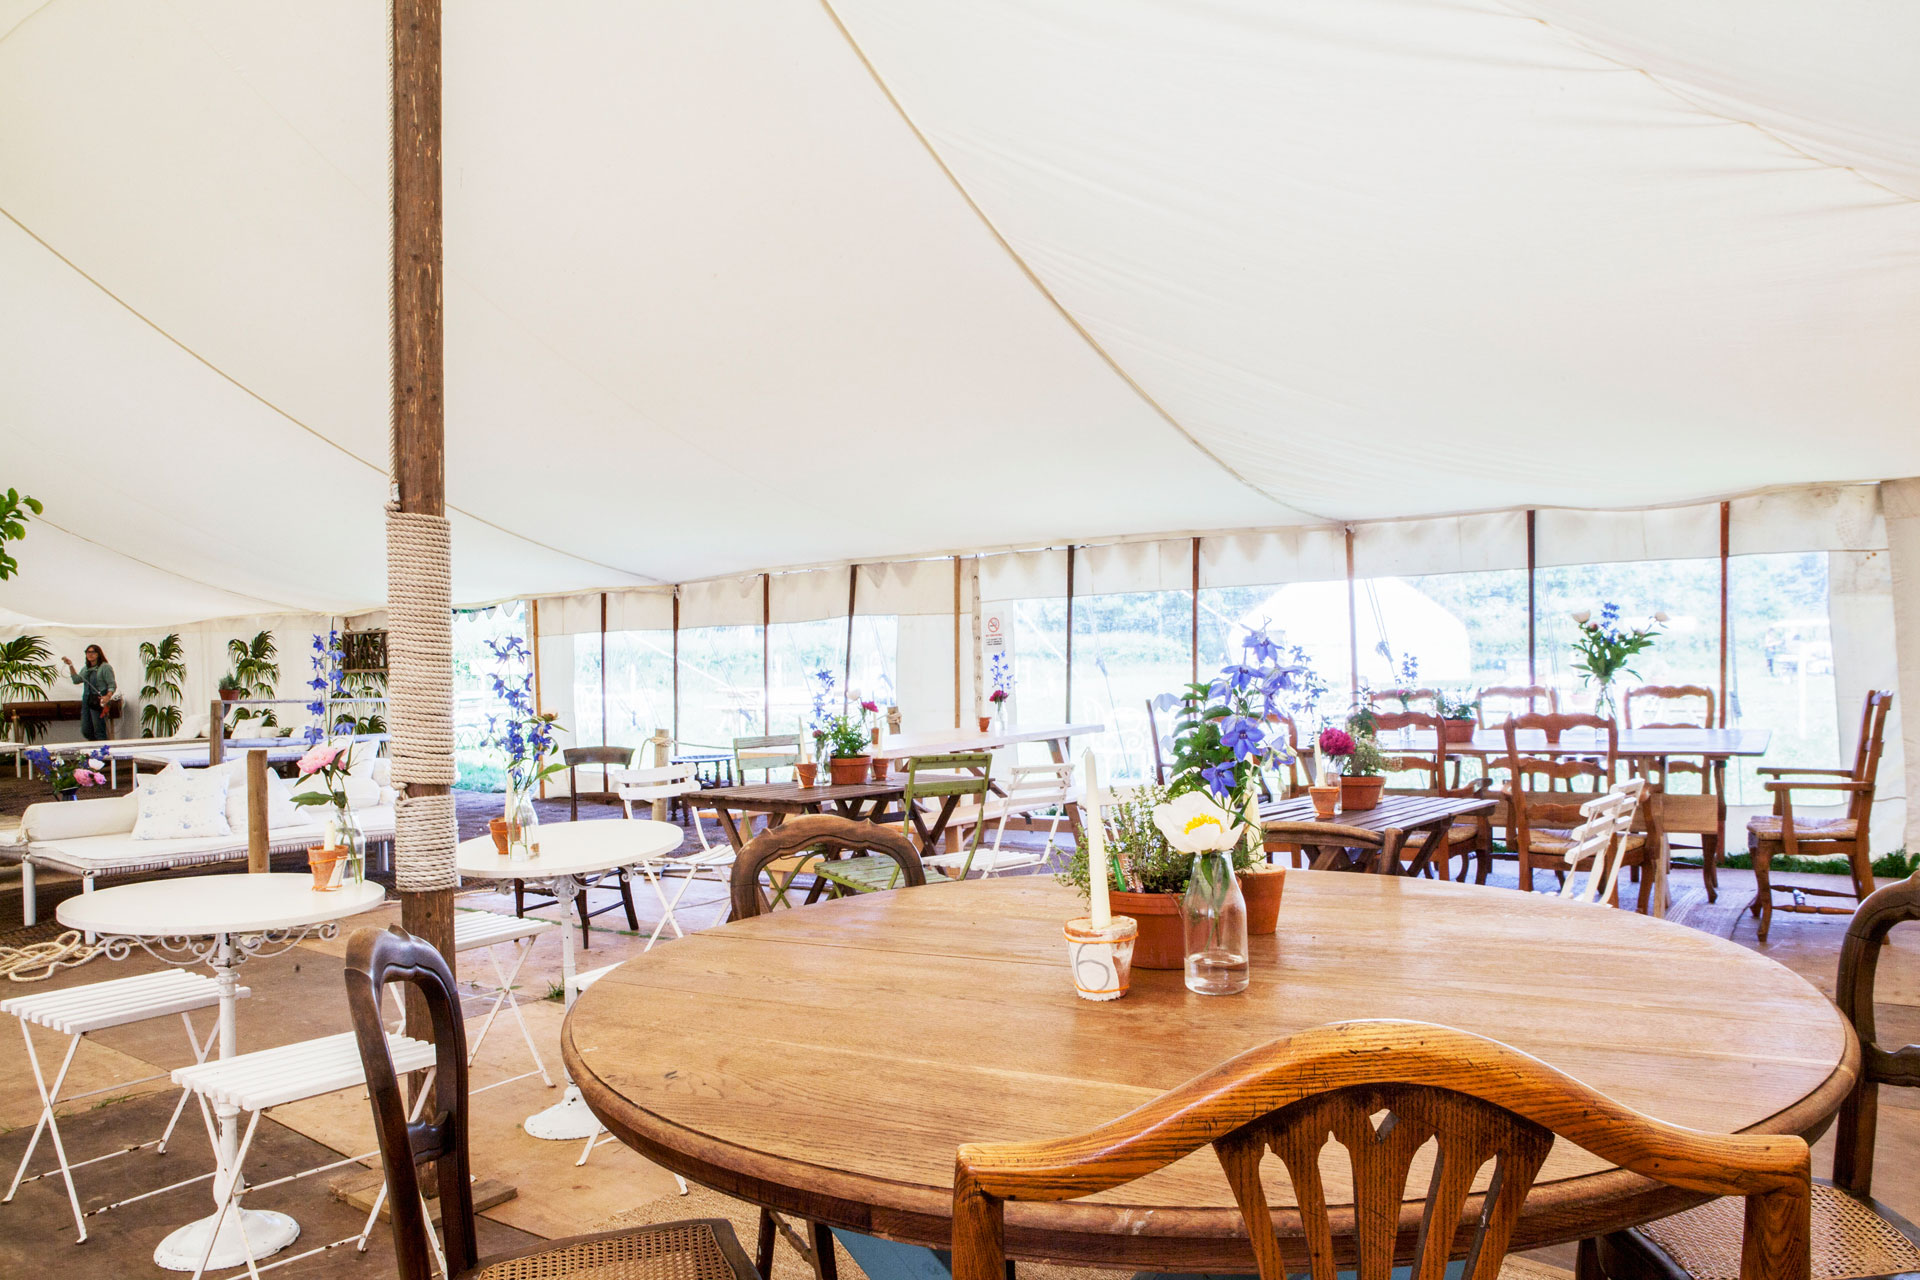 Tables in the Orchard Restaurant